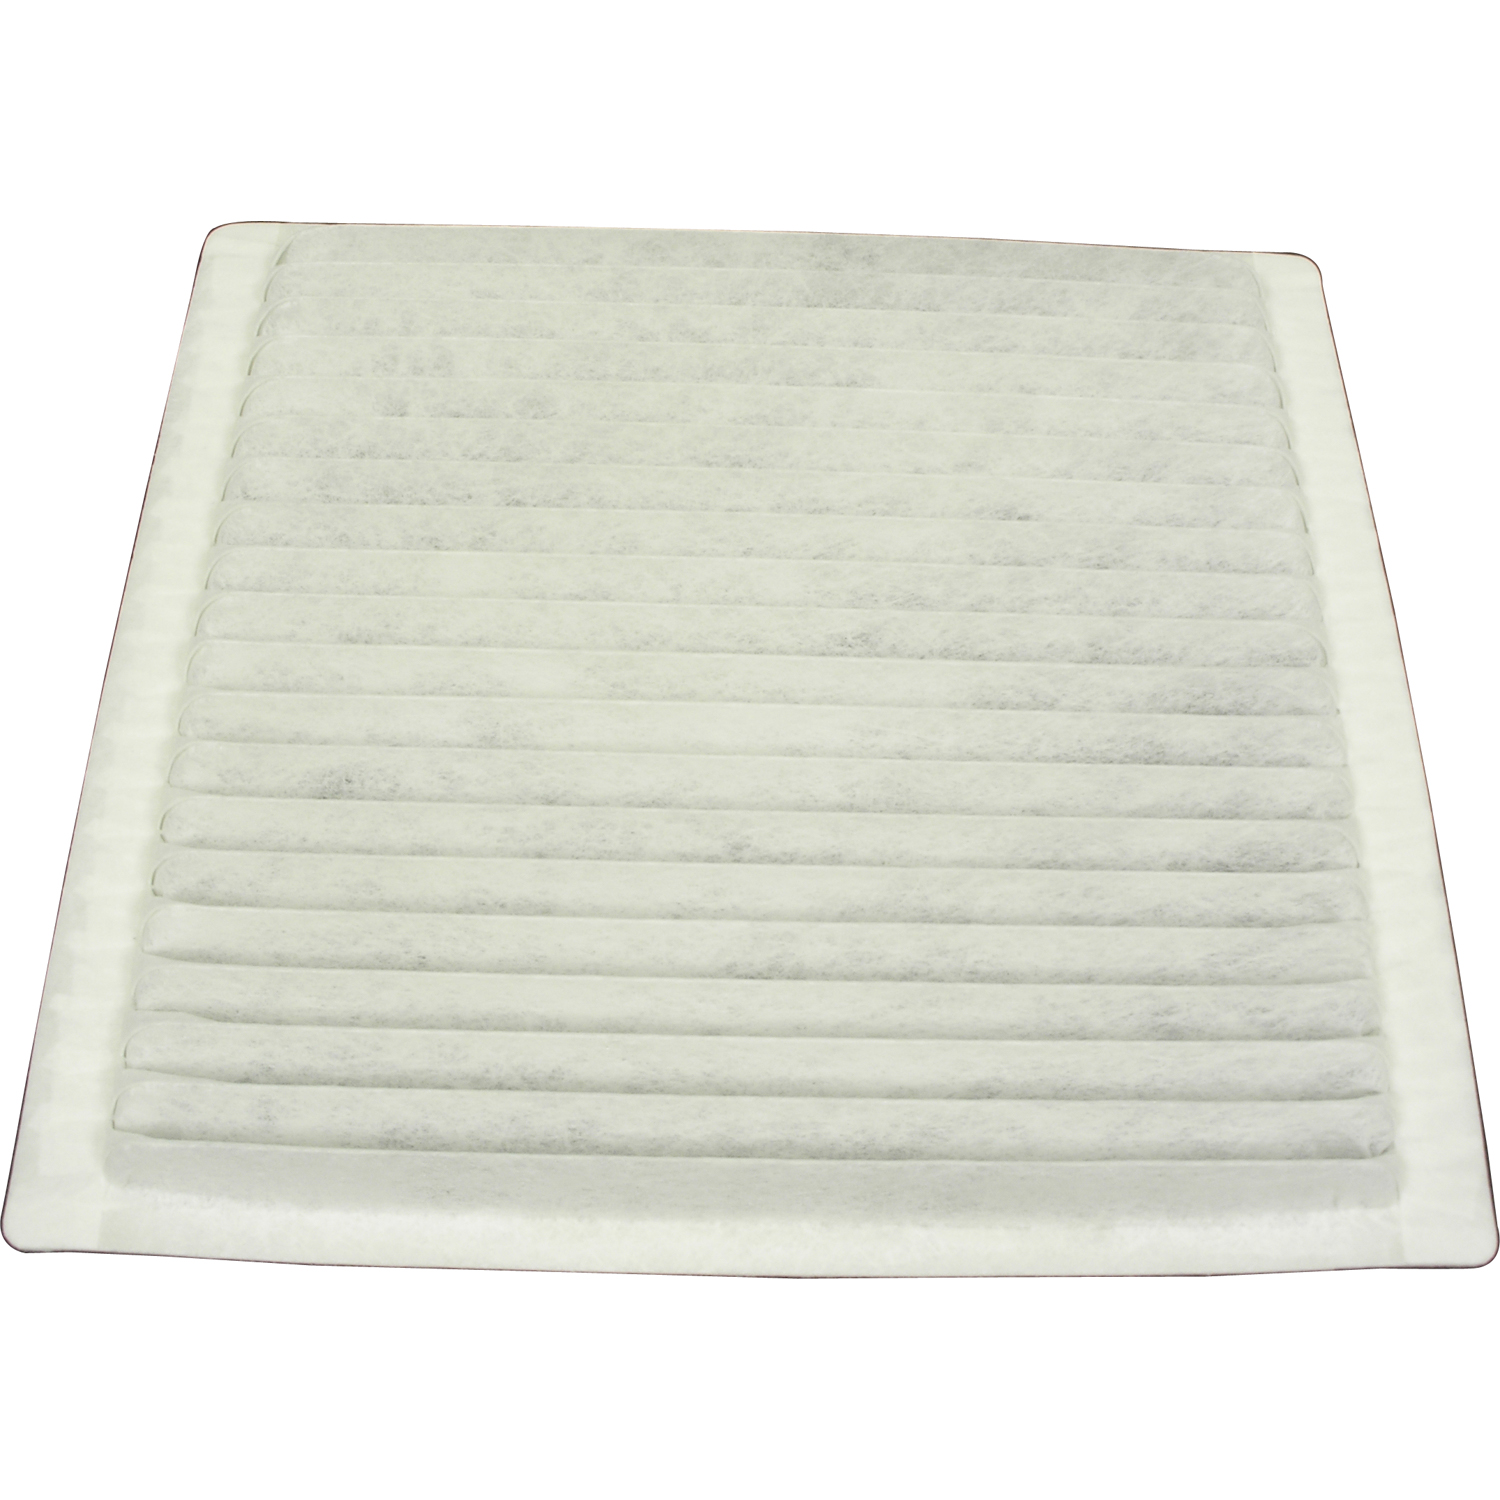 Particulate Cabin Air Filter LEX LS300 05